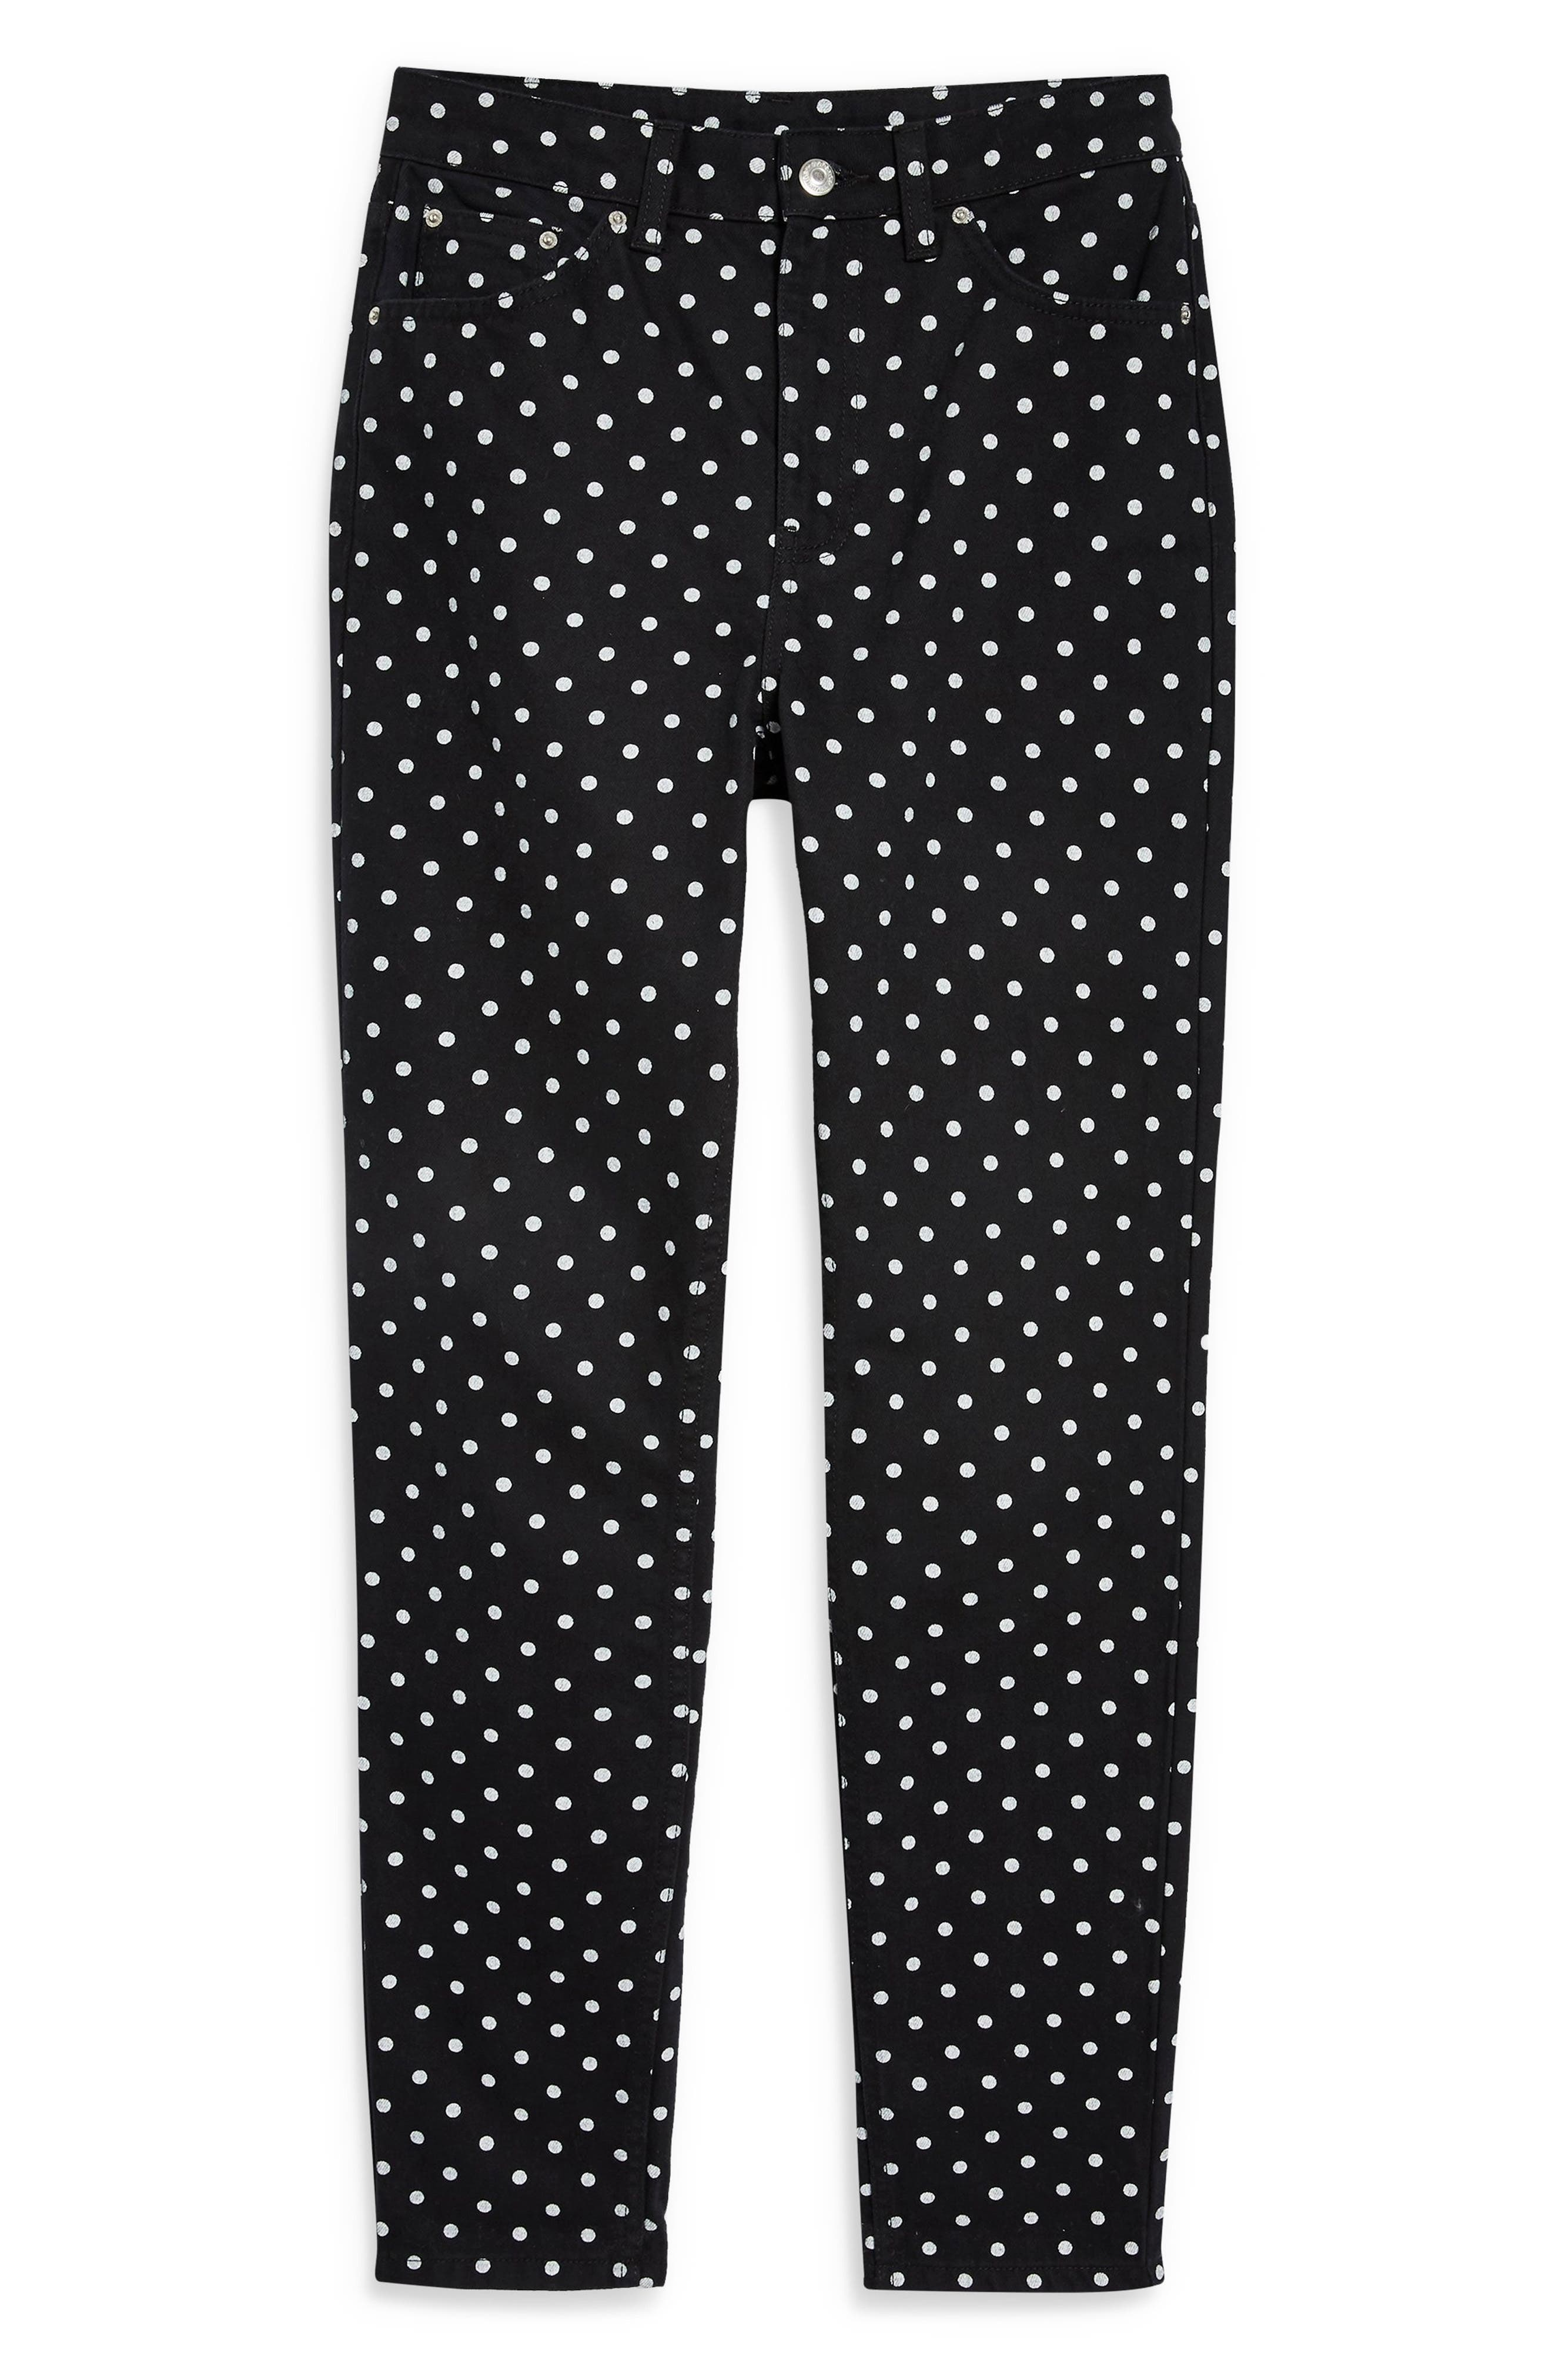 MOTO Polka Dot Mom Jeans,                             Alternate thumbnail 4, color,                             BLACK MULTI